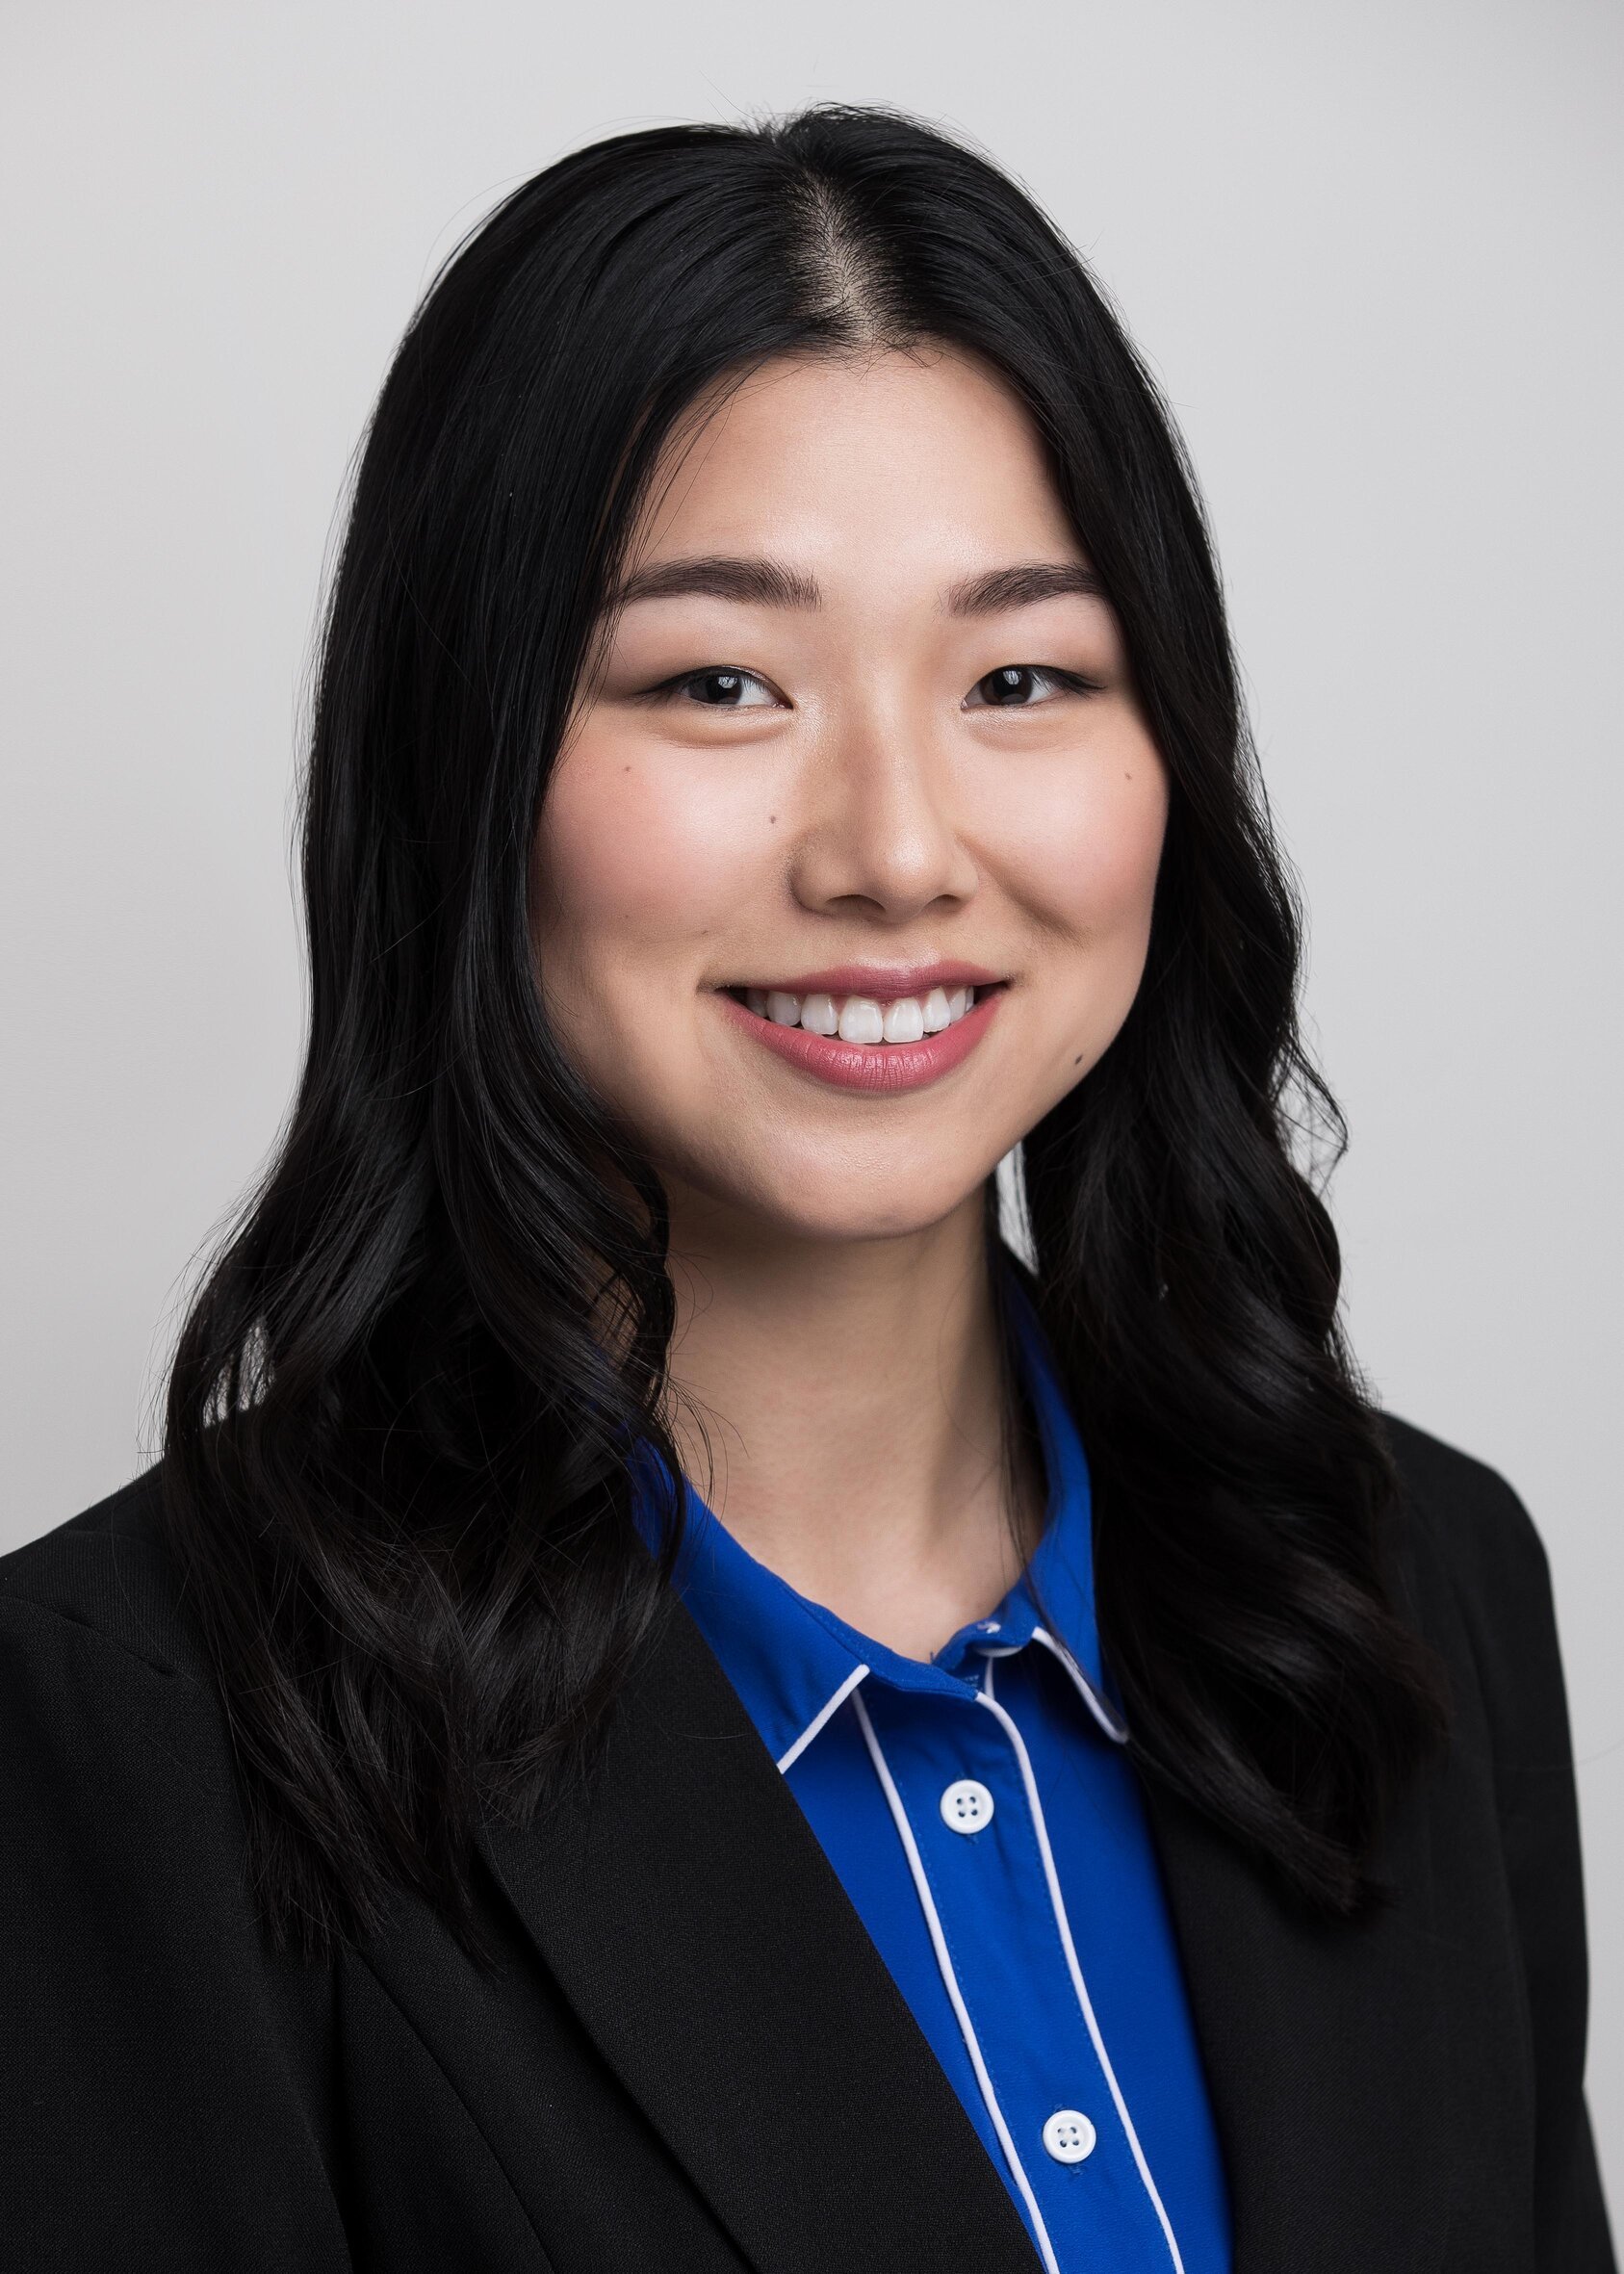 Dr. Lucy Luo